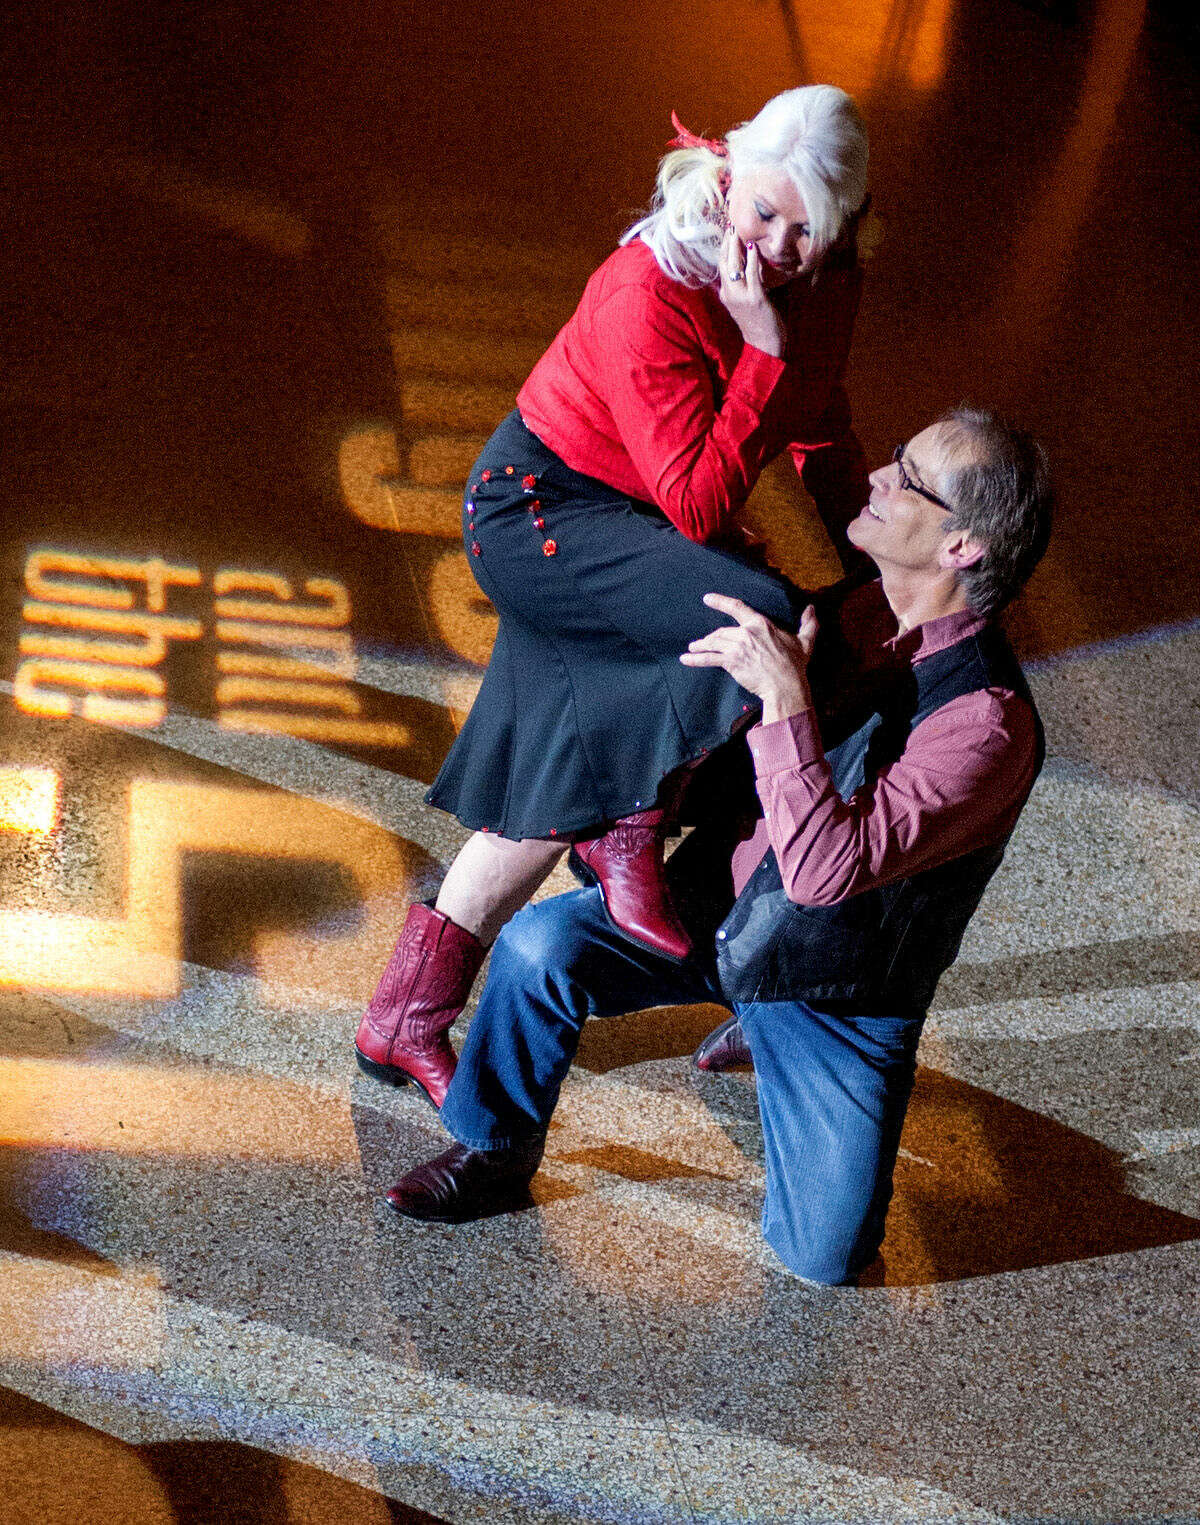 Wendy Traschen and Lon Wackerle dance the East Coast Swing for Family & Children's Services at Swingshift and the Stars at the Bay City Scottish Rite Masonic Center.